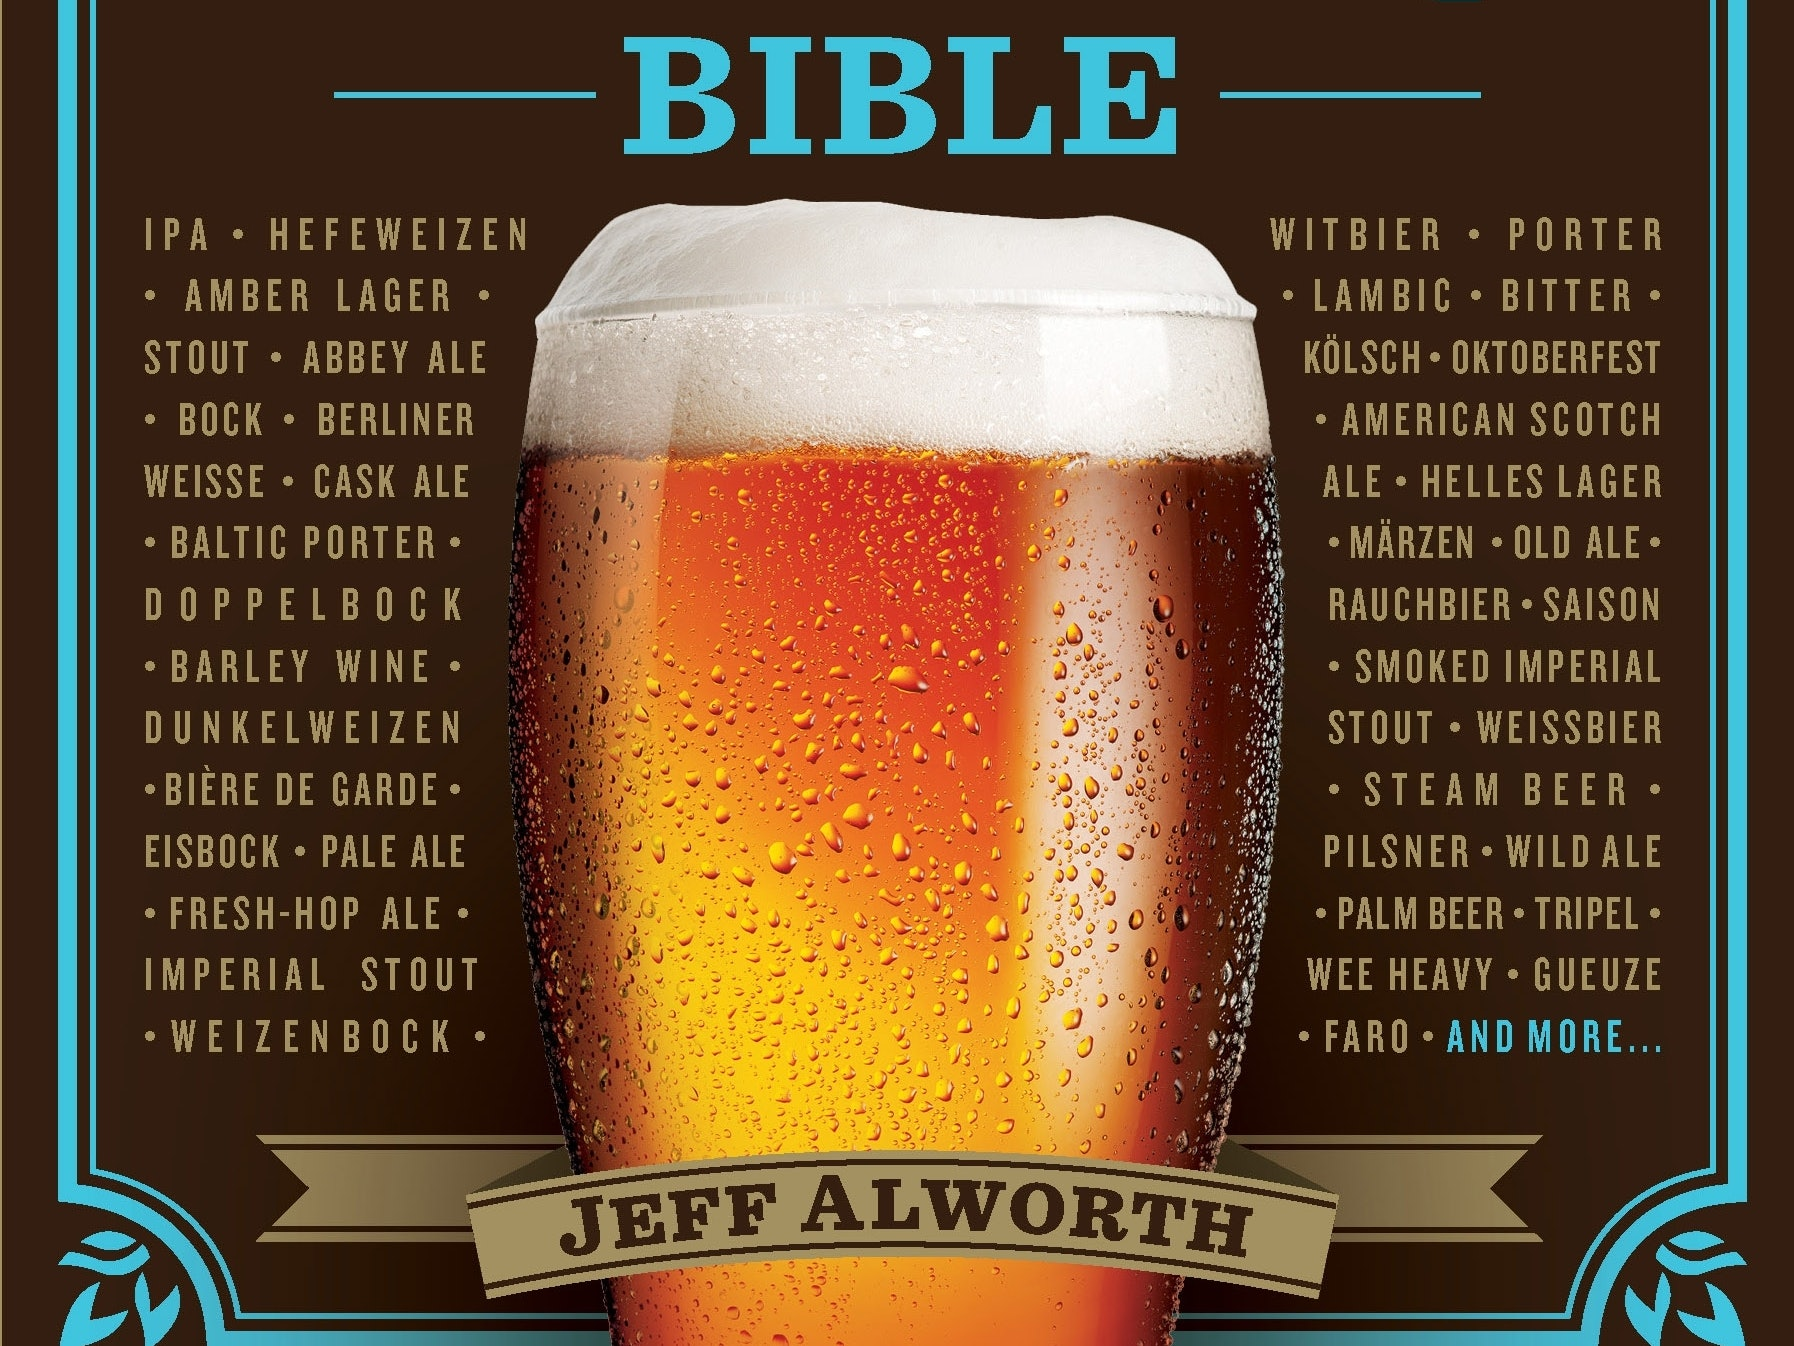 Every Man Should Have 'The Beer Bible' in His Library, a Buncha Beer in Fridge